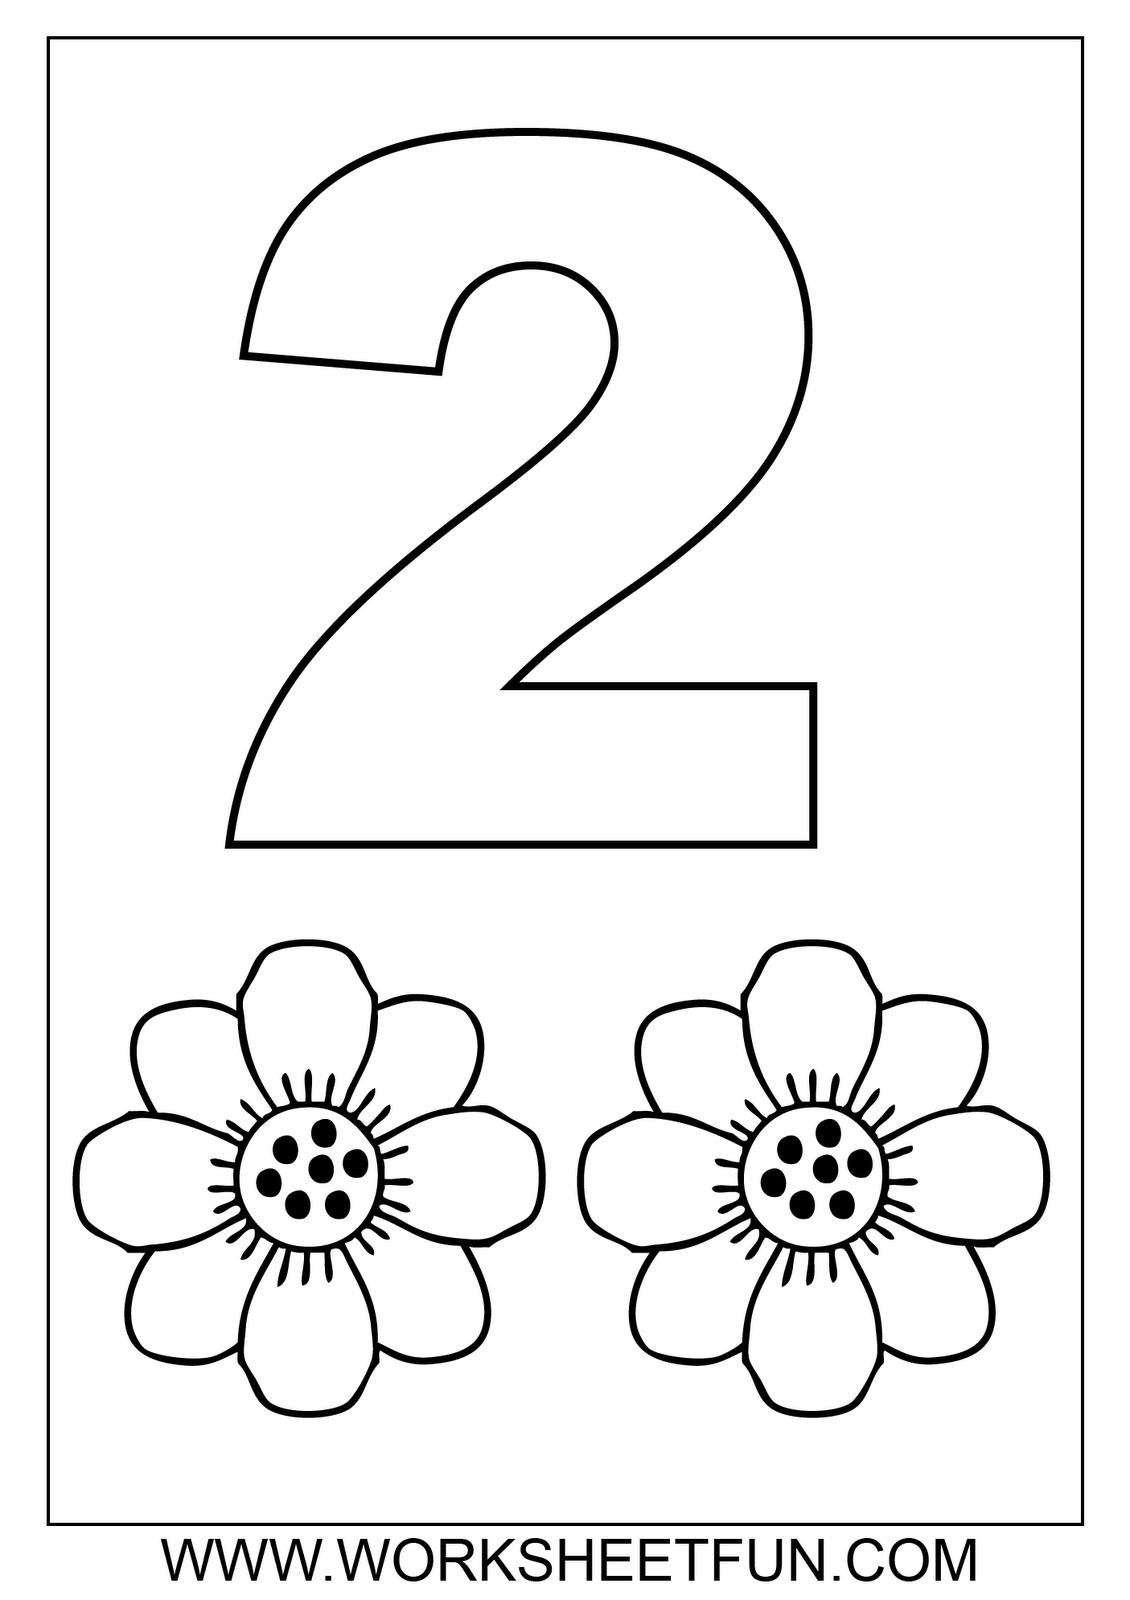 photograph about Printable Number Coloring Pages titled Preschool Selection Coloring Web pages Down load Coloring Web site